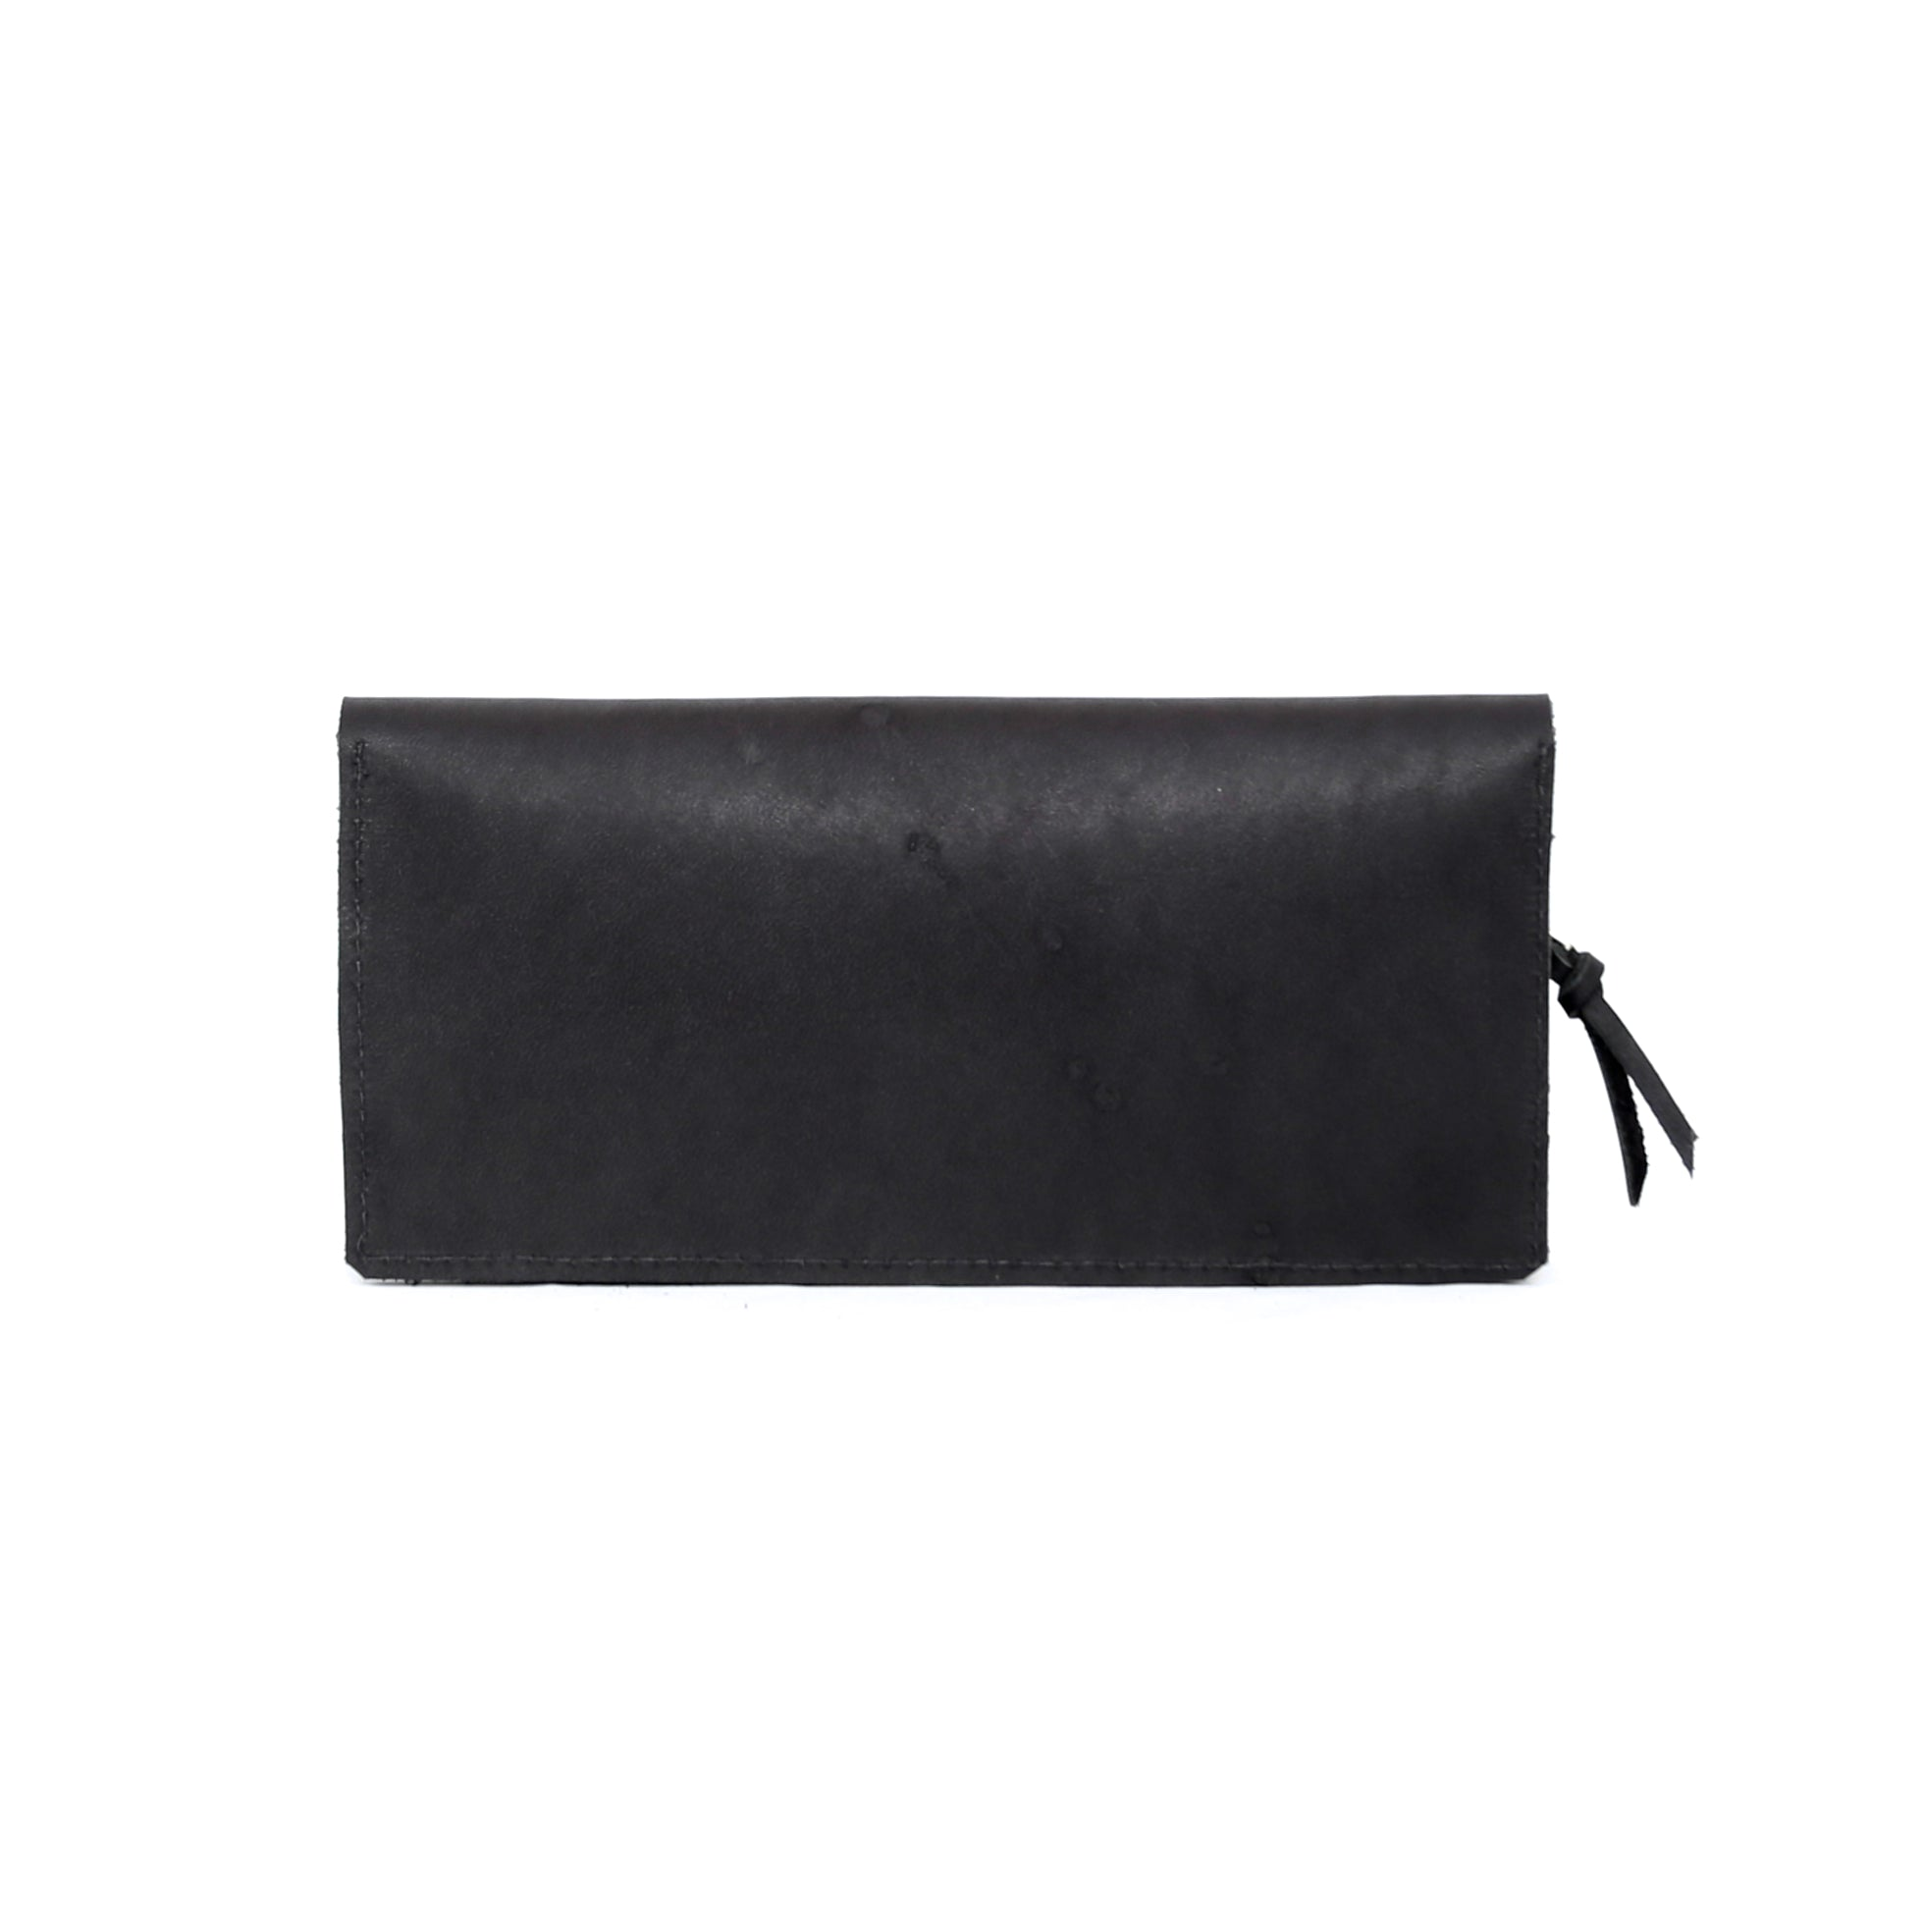 Travel Wallet in Black Leather - handcrafted by Market Canvas Leather in Tofino, BC, Canada